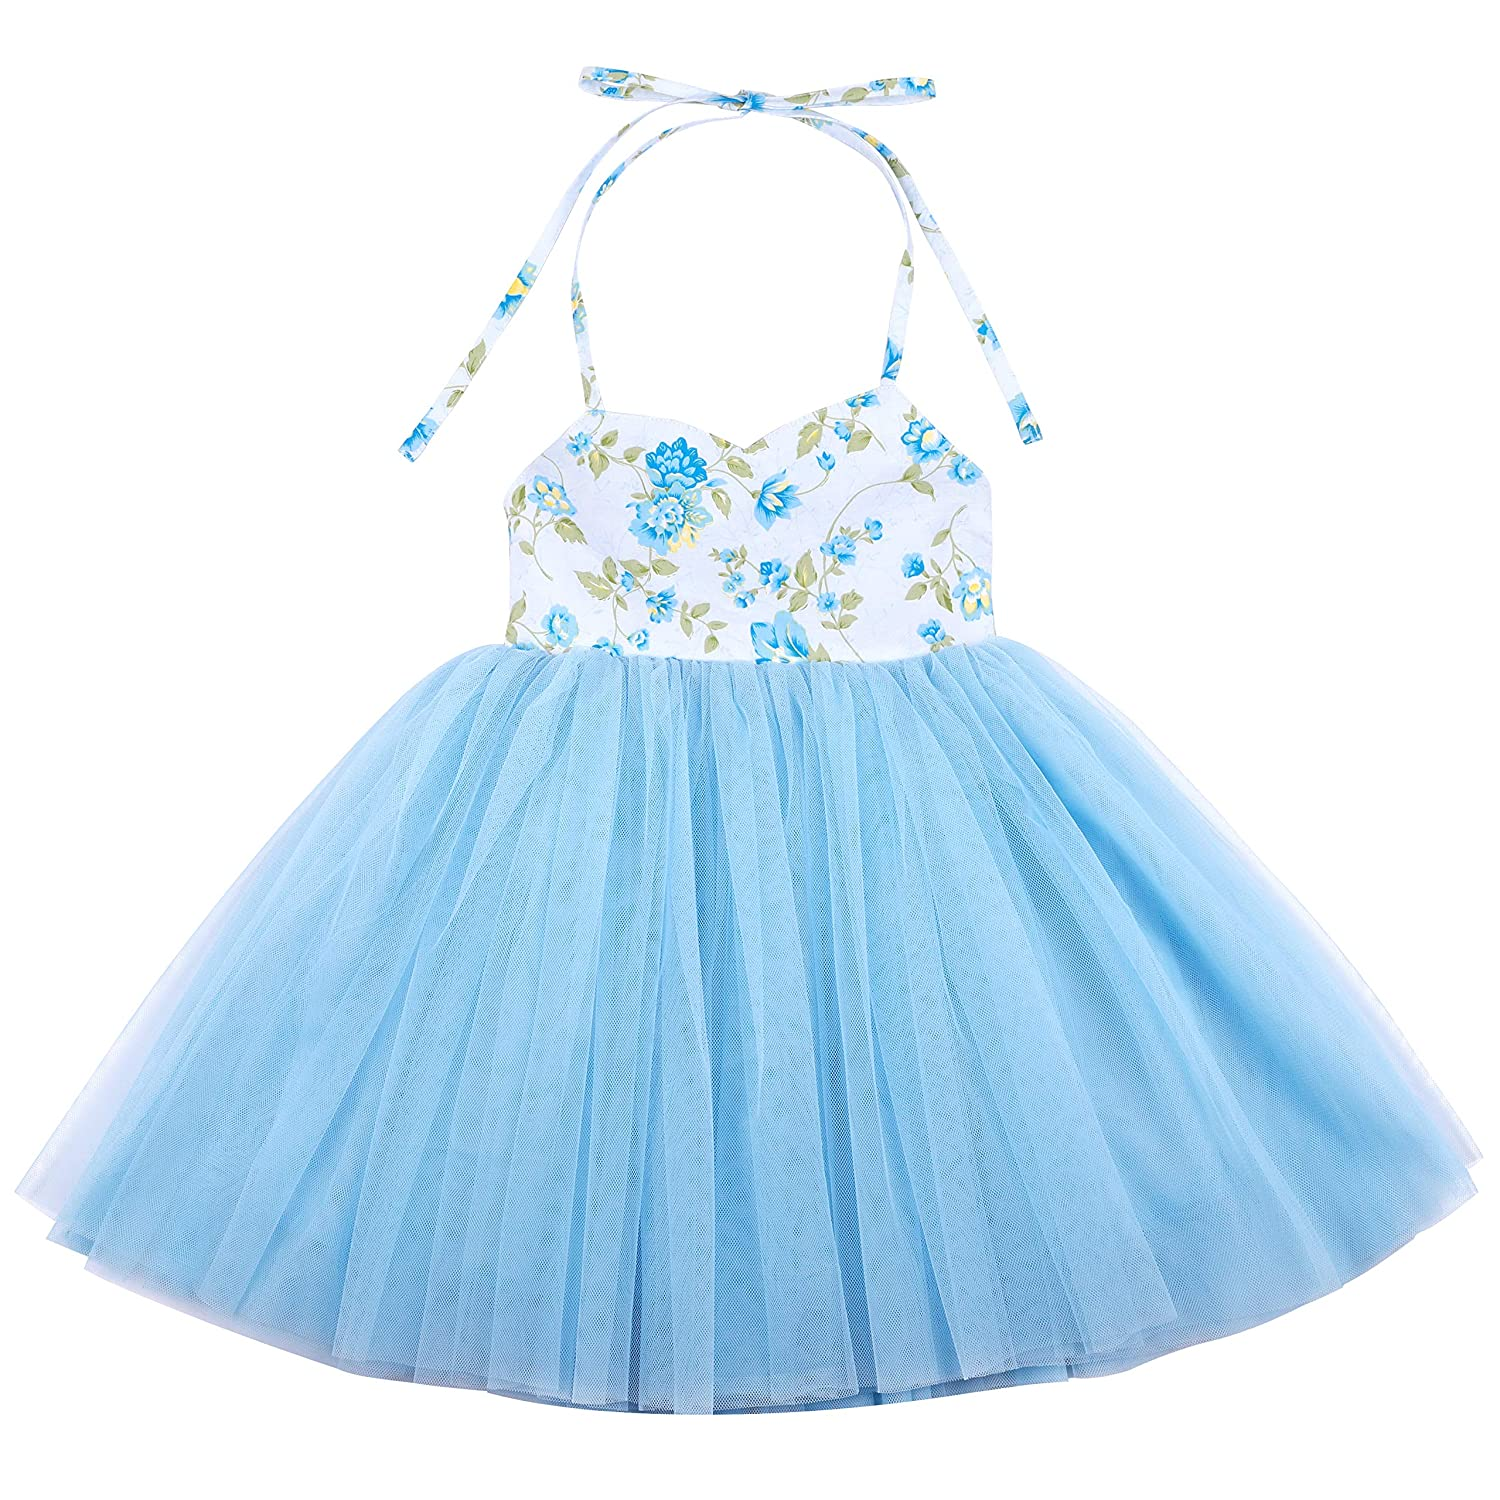 d0e7f26e7 Amazon.com: Flofallzique Special Occasion Girls Dress Pink Tutu Wedding  Christening Birthday Baby Toddler Clothes: Clothing